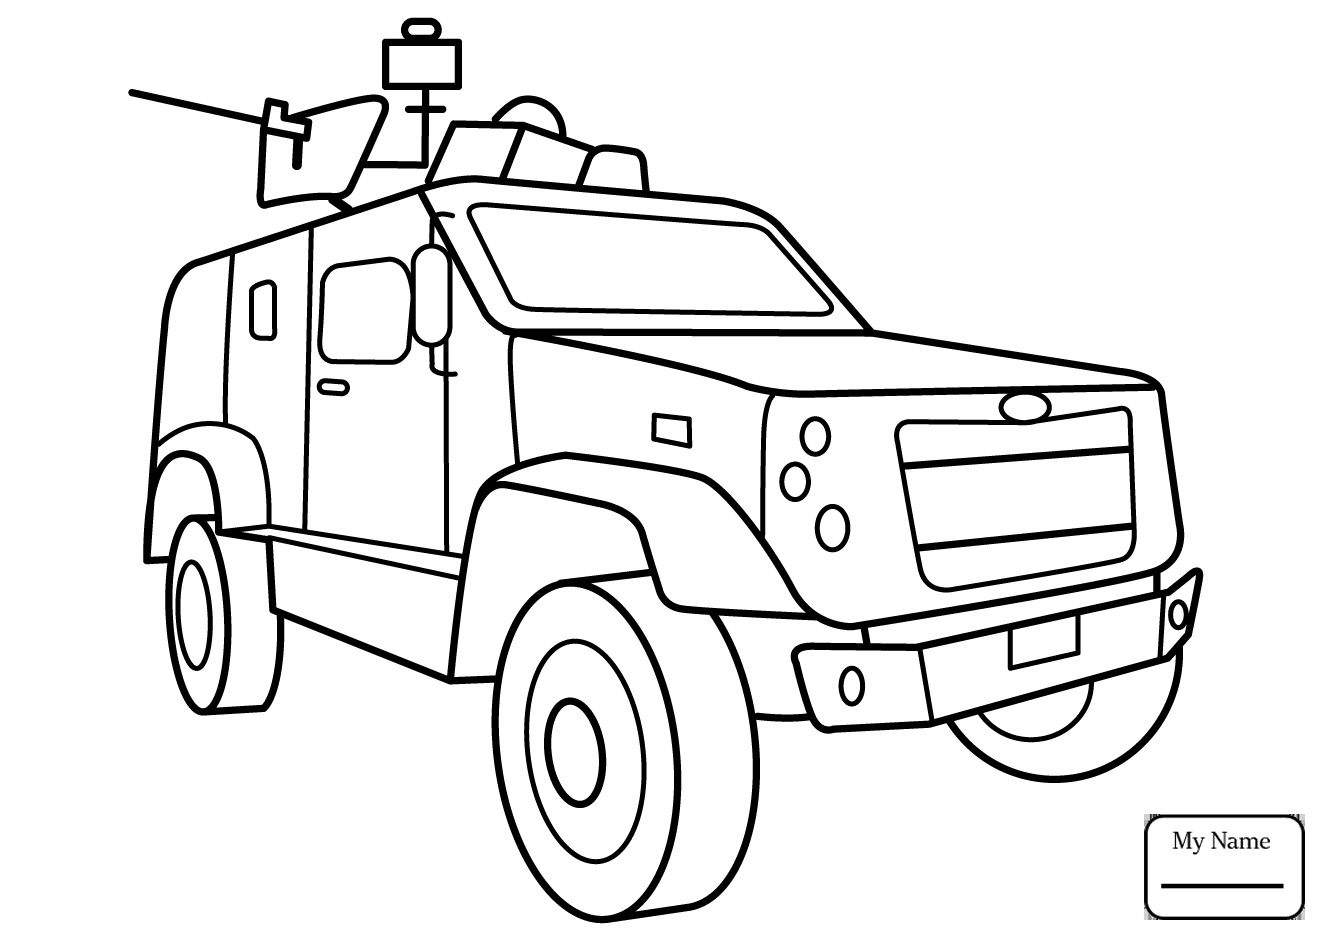 Military Vehicles Drawing at GetDrawings.com | Free for personal use ...